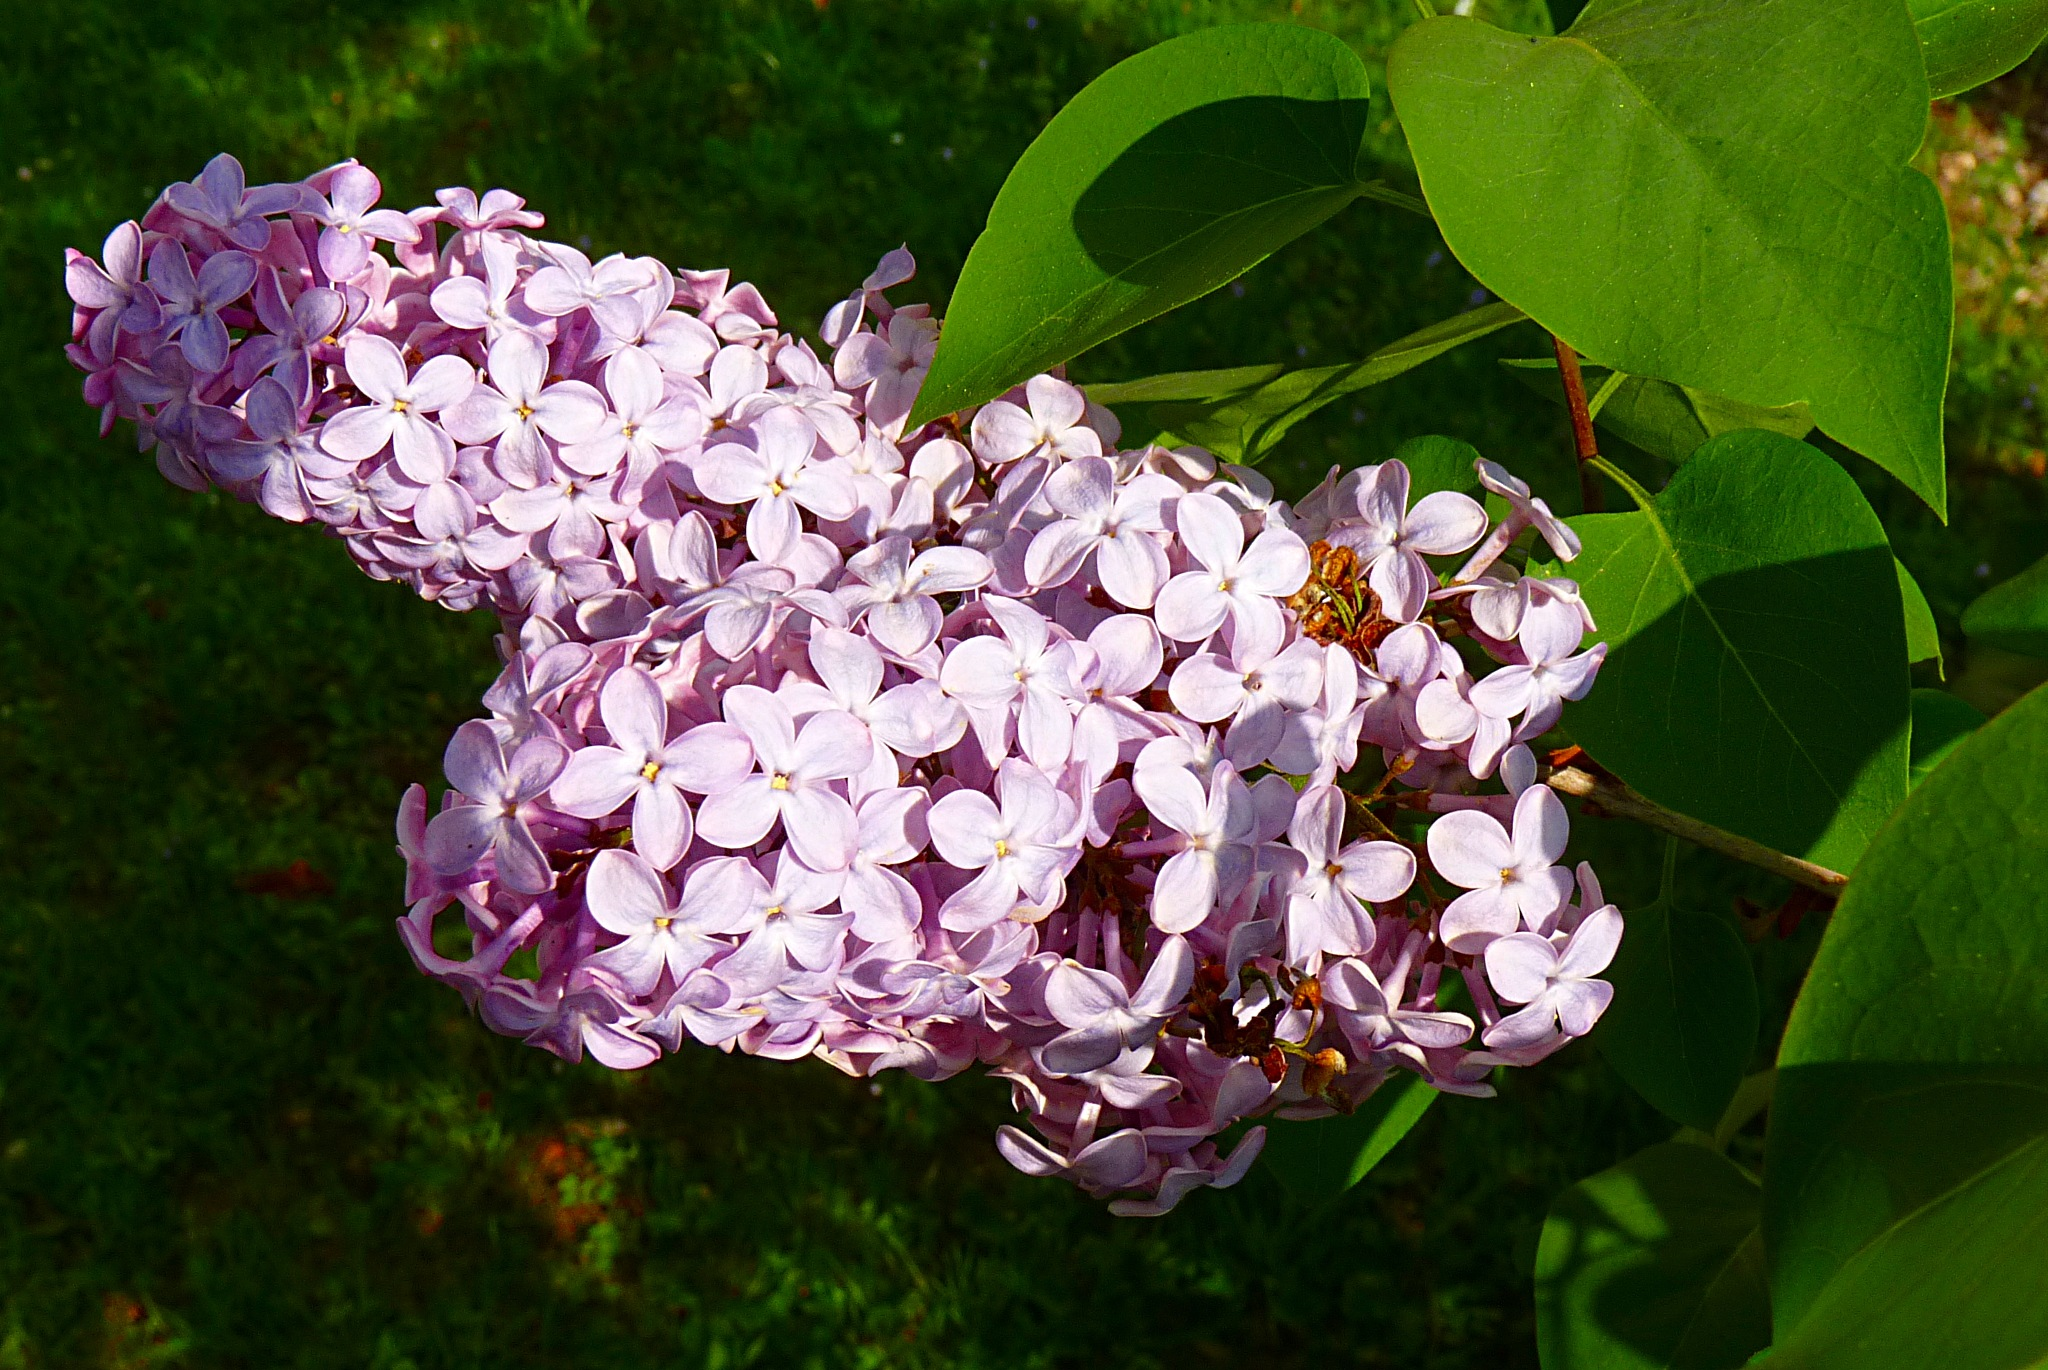 Syringa vulgaris by zvnktomasevic